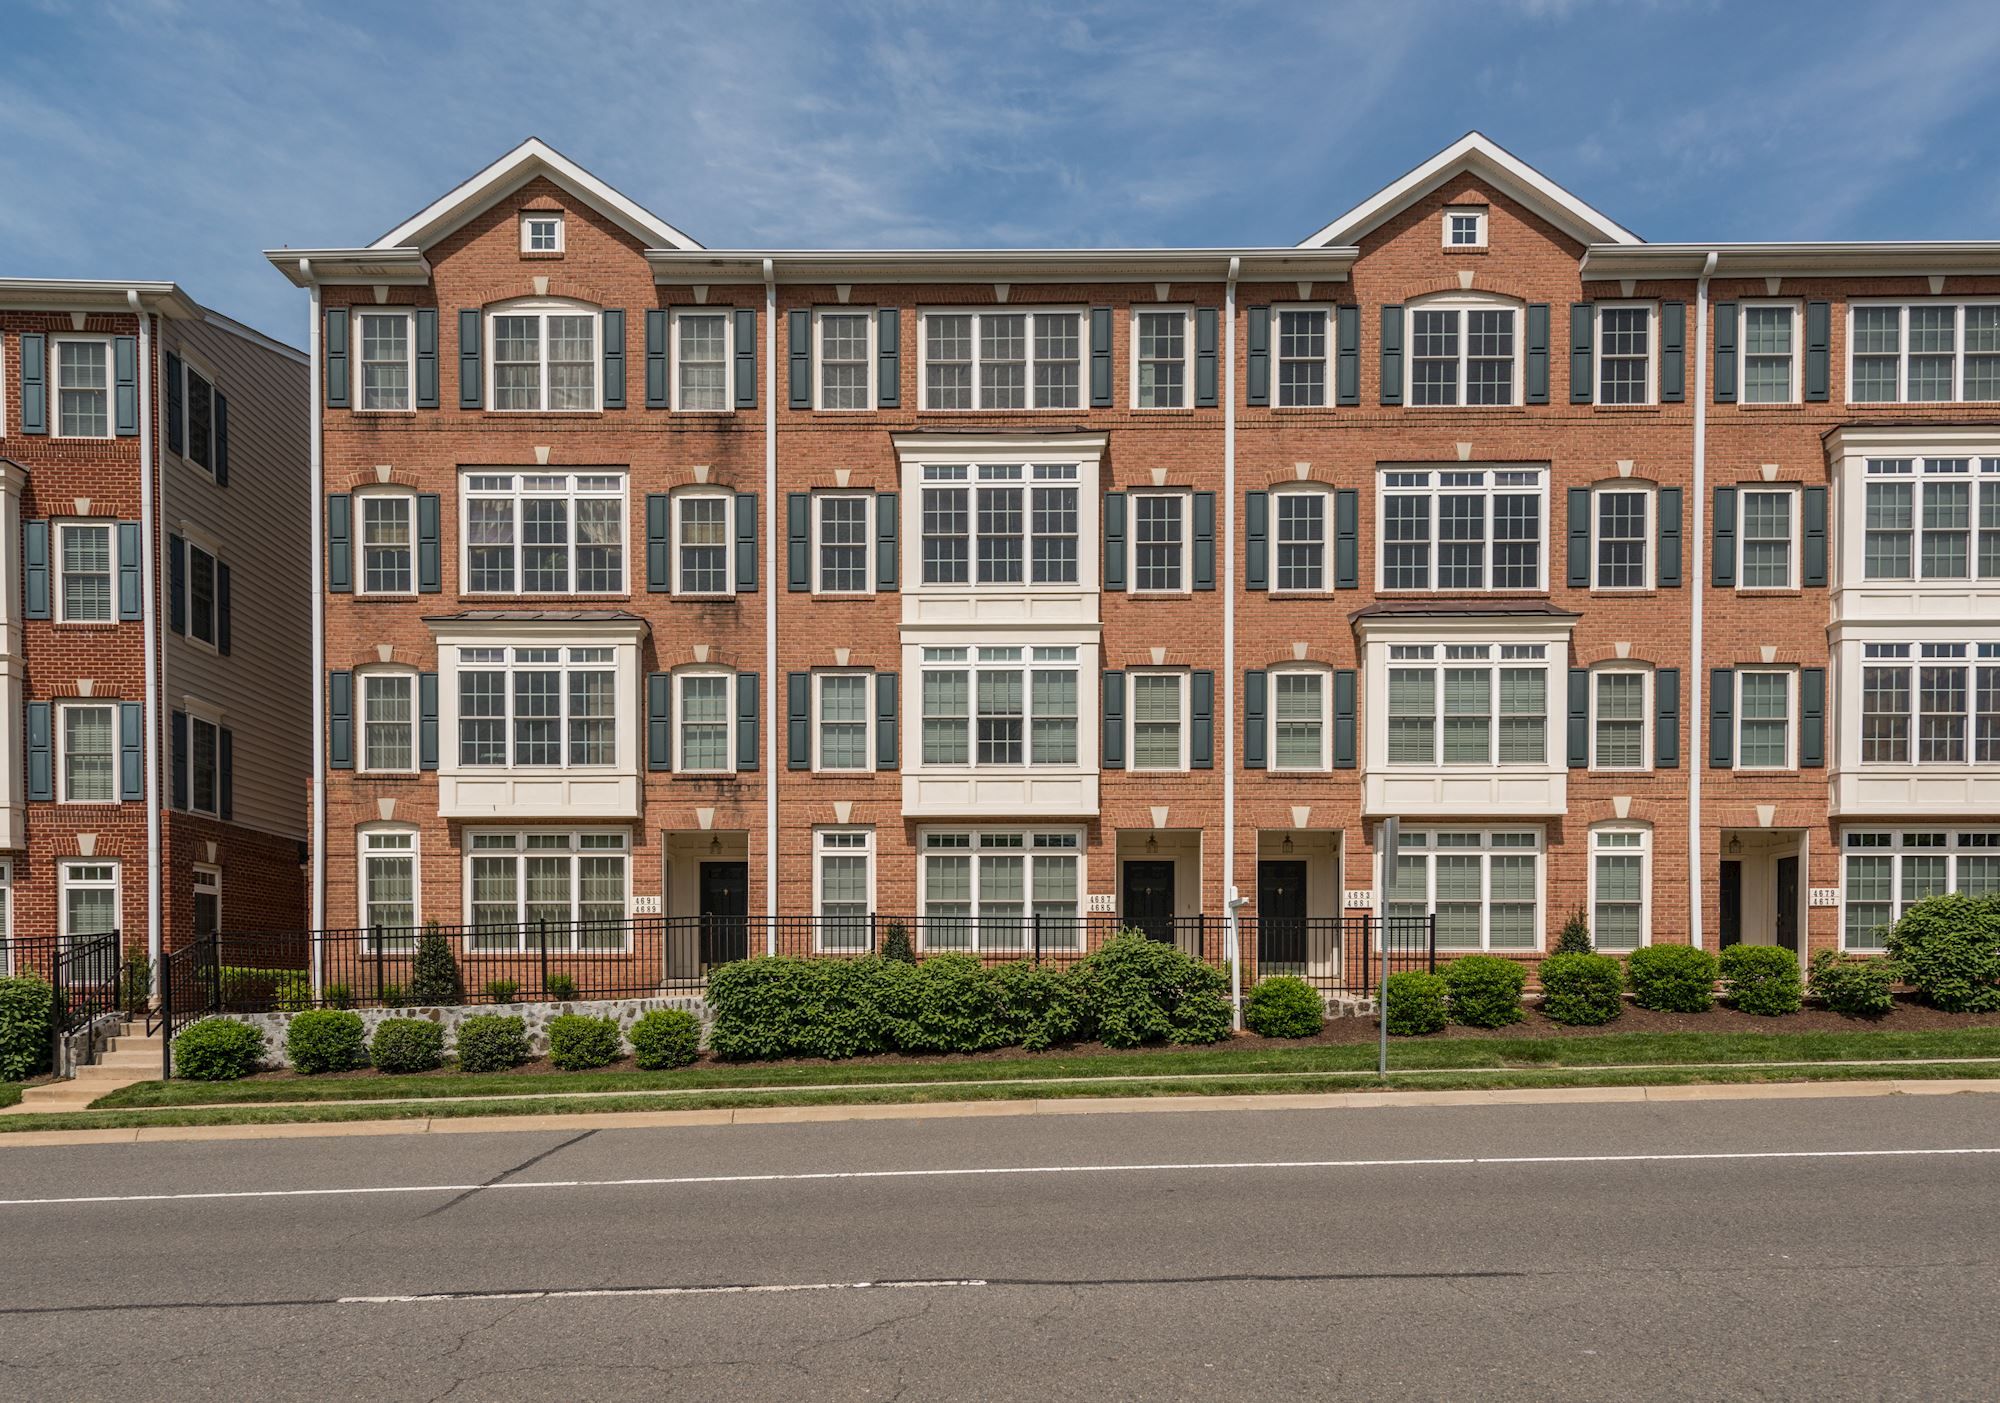 NEW LISTING: Luxury 3 Bed Townhouse In Fairfax